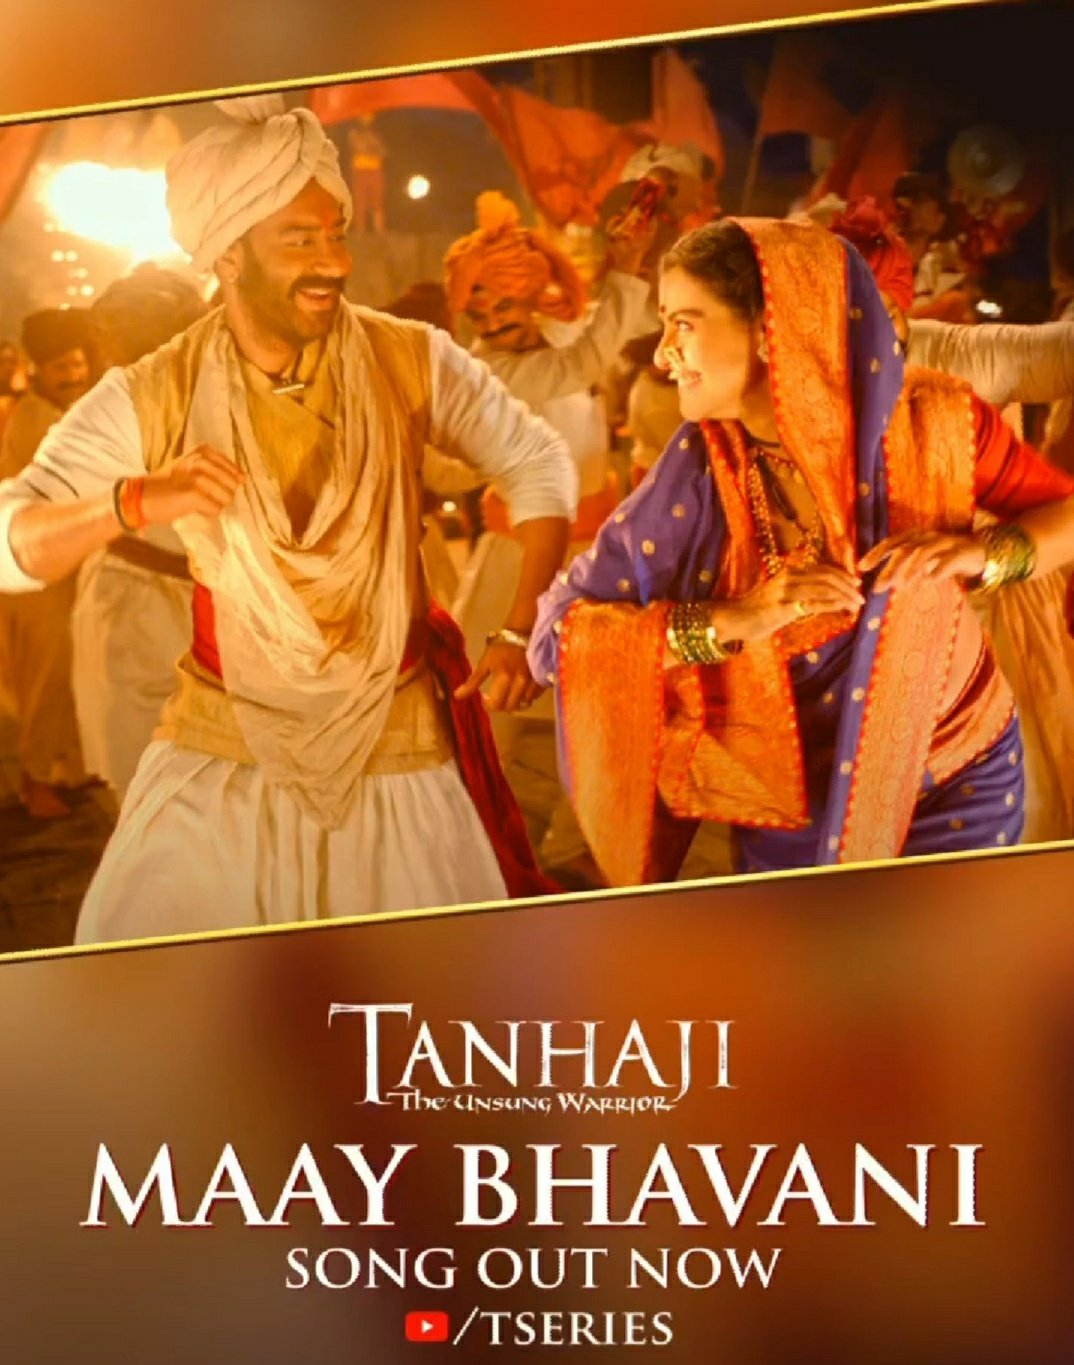 Tanhaji: The Unsung Warrior- Maay Bhavani Video | Ajay, Kajol | Sukhwinder S, Shreya G | 10 Jan 2020